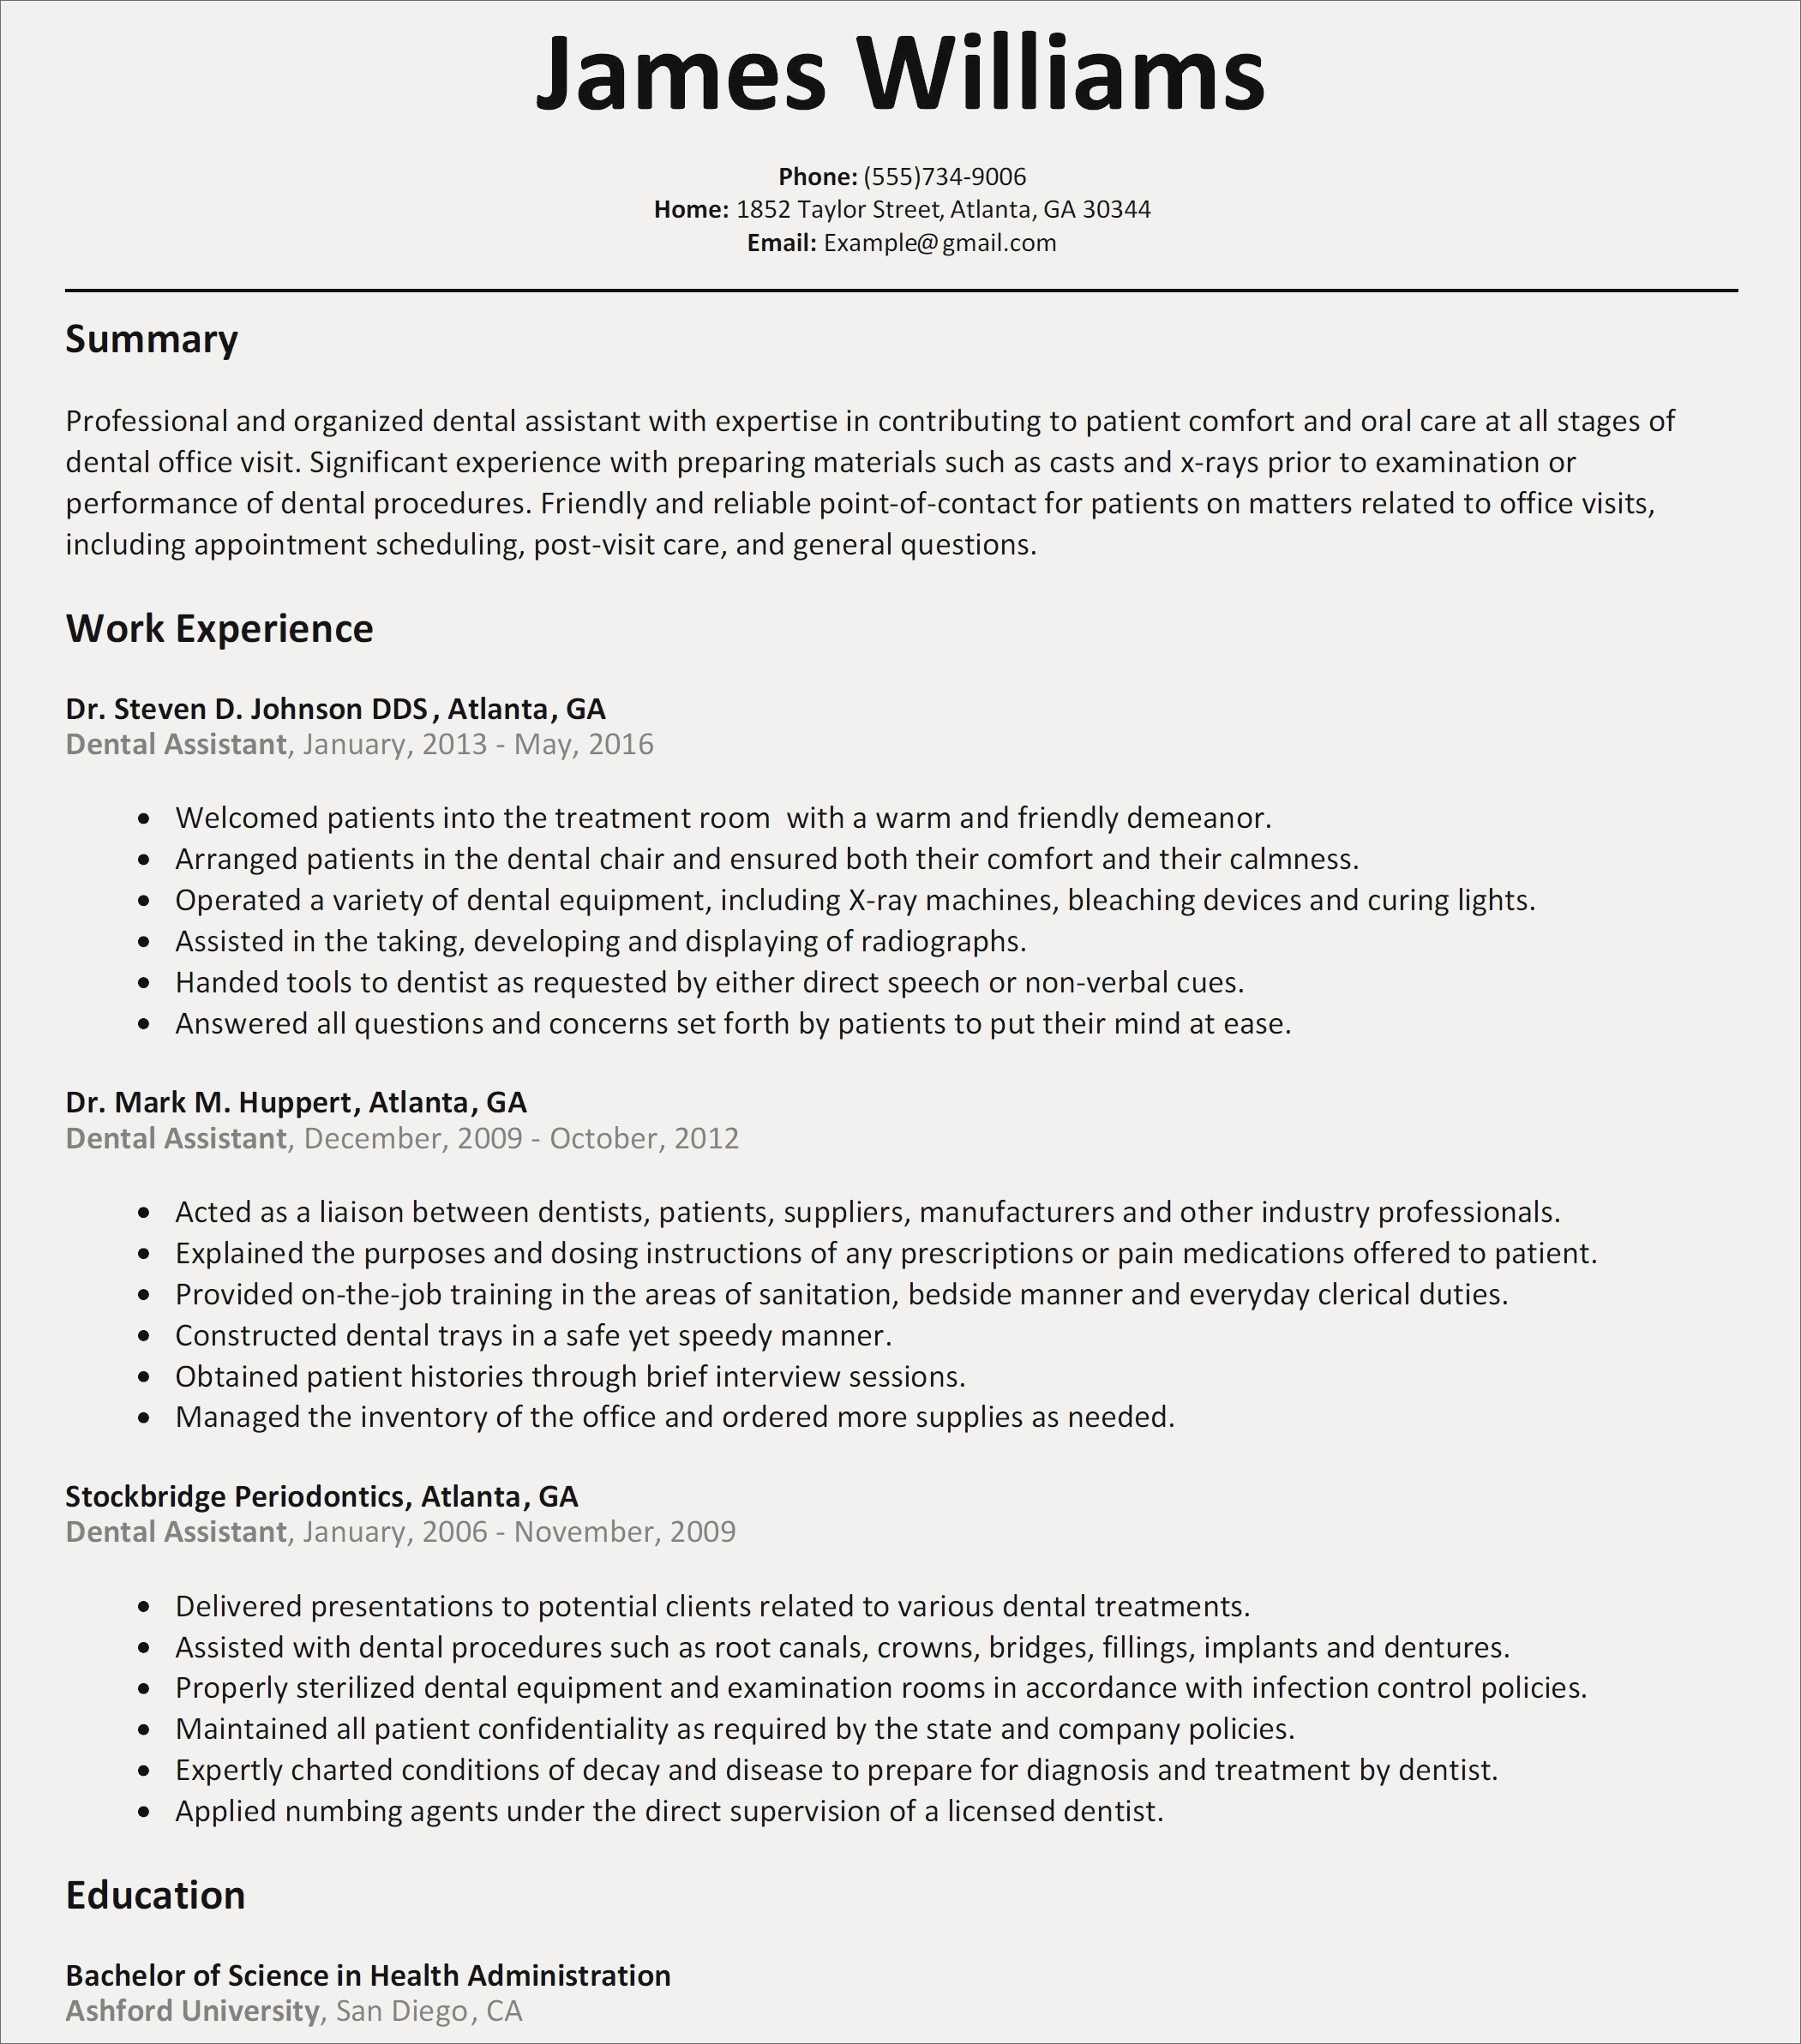 Landscaping Resume Examples - How to Make A Resume Cove Best How to Write A Cover Letter for